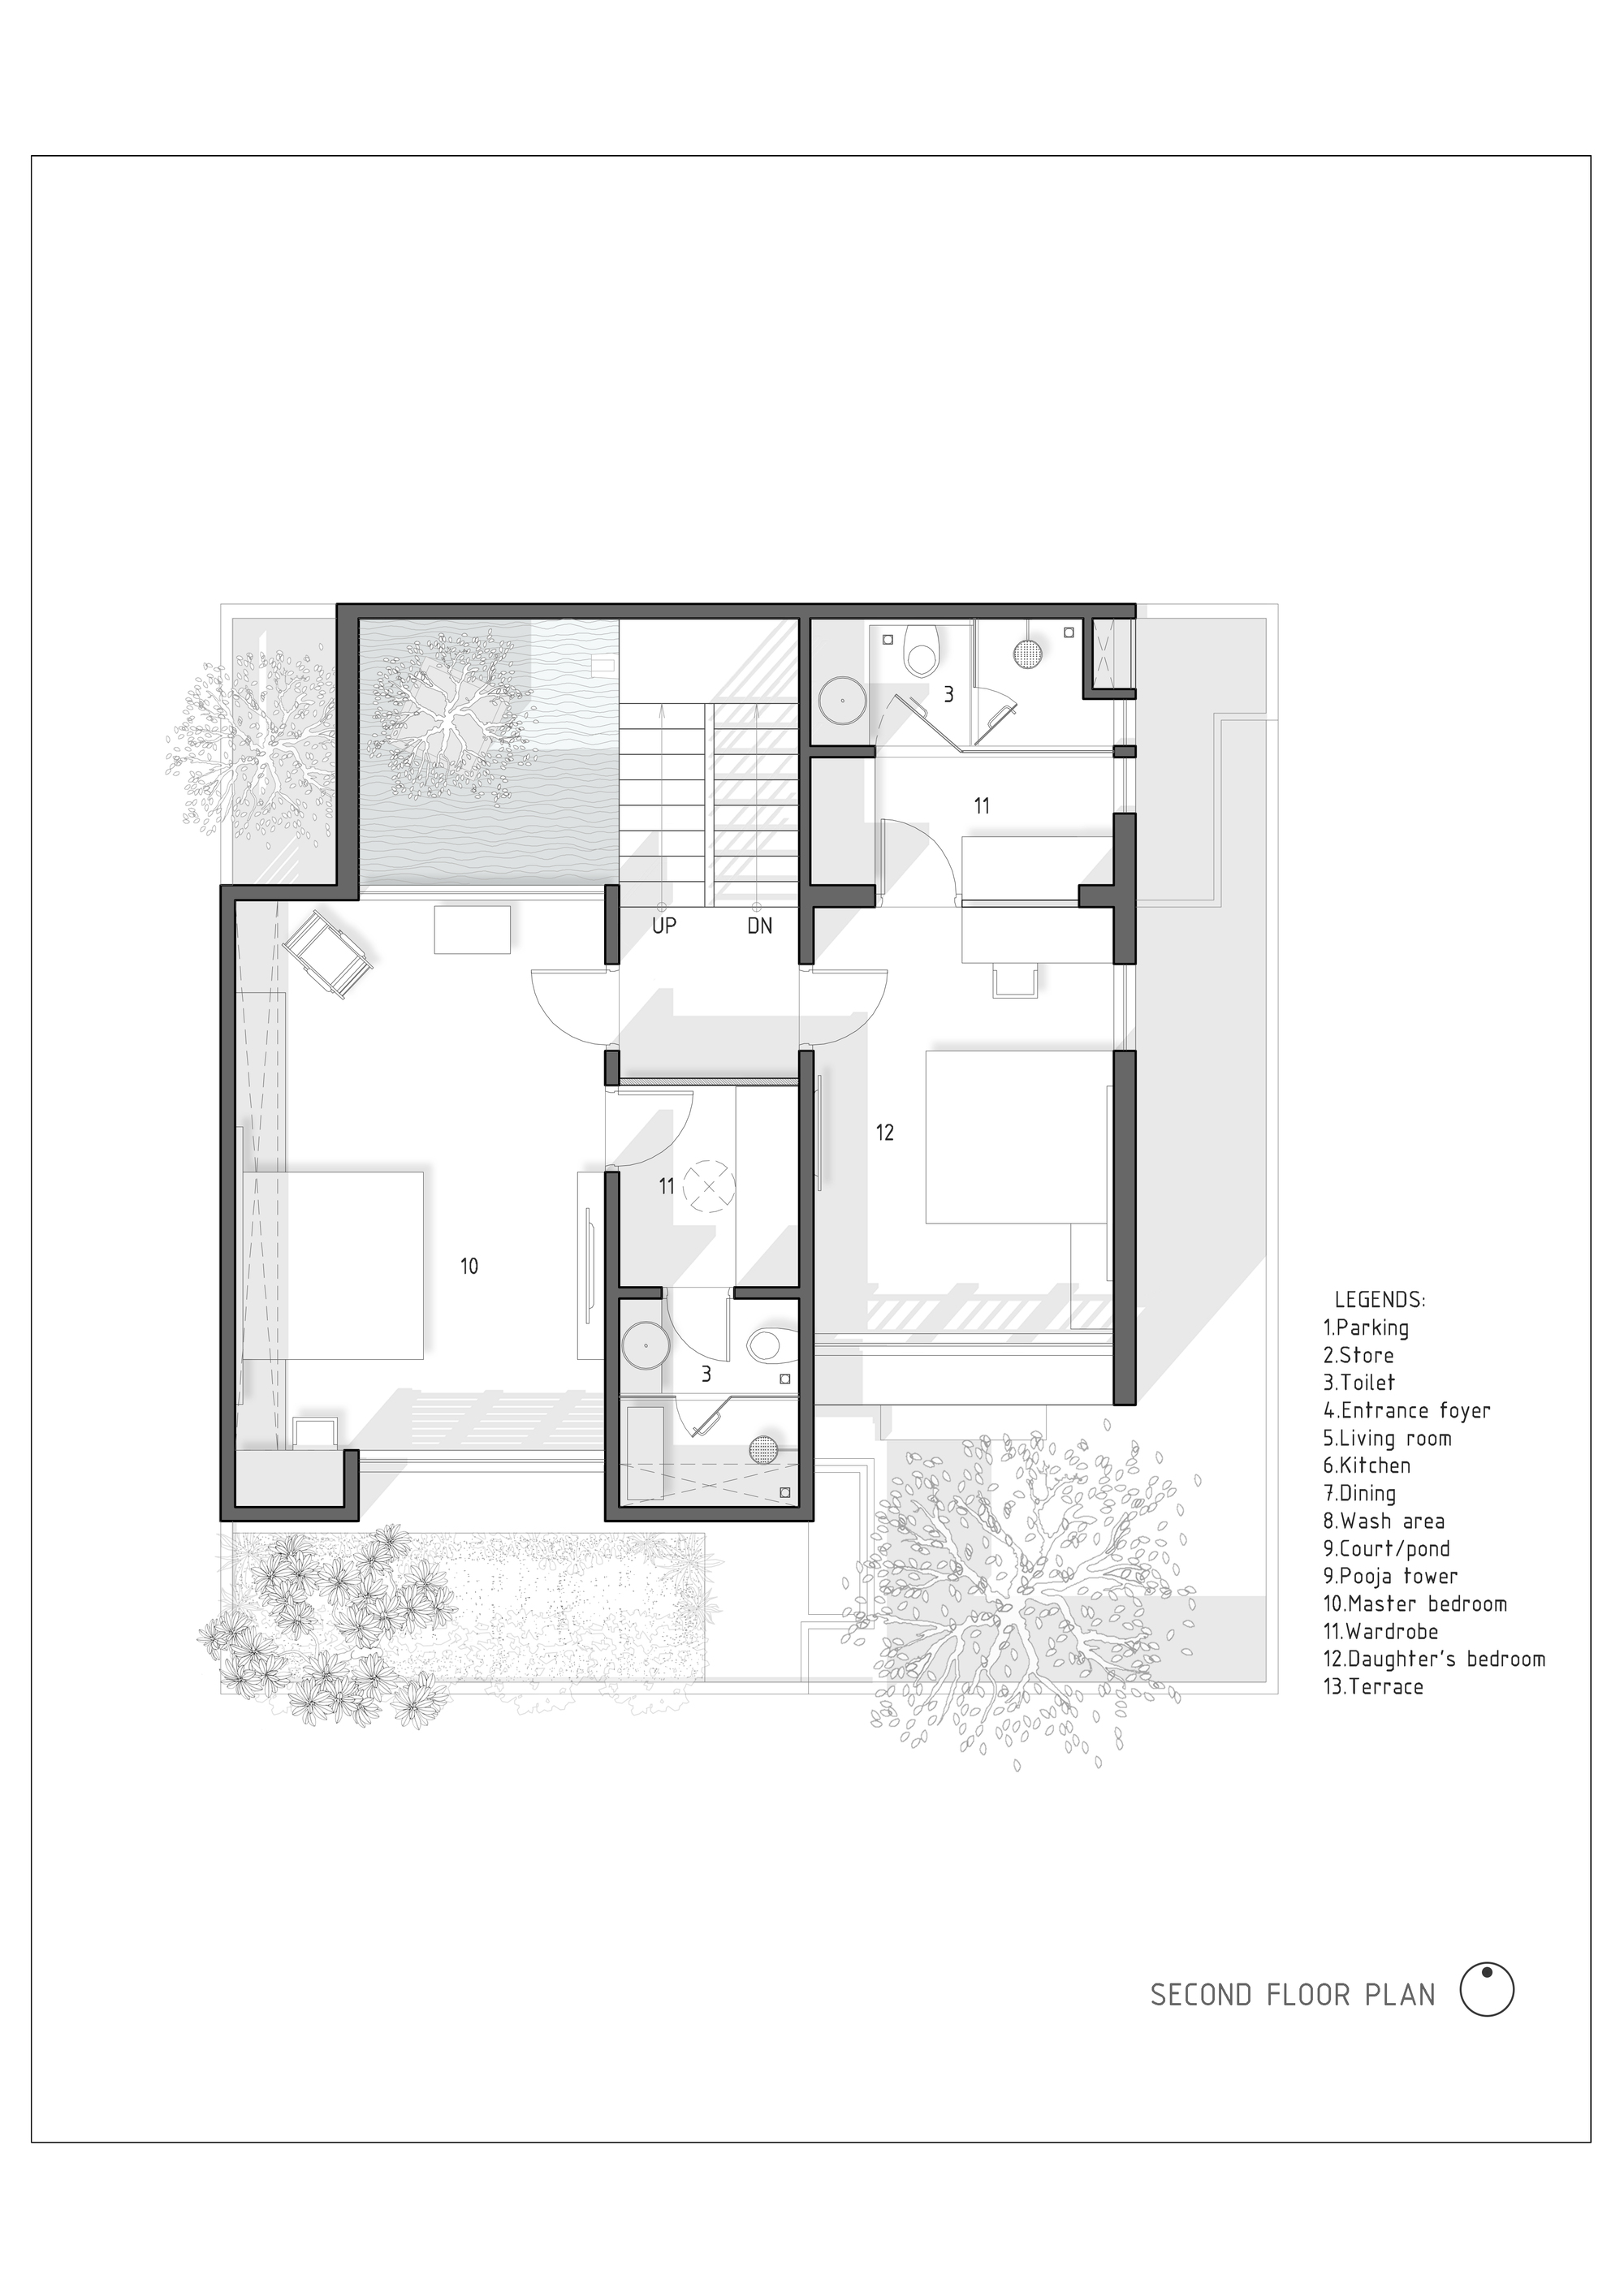 Gallery of the h cube house studio lagom 24 for Cube house design layout plan